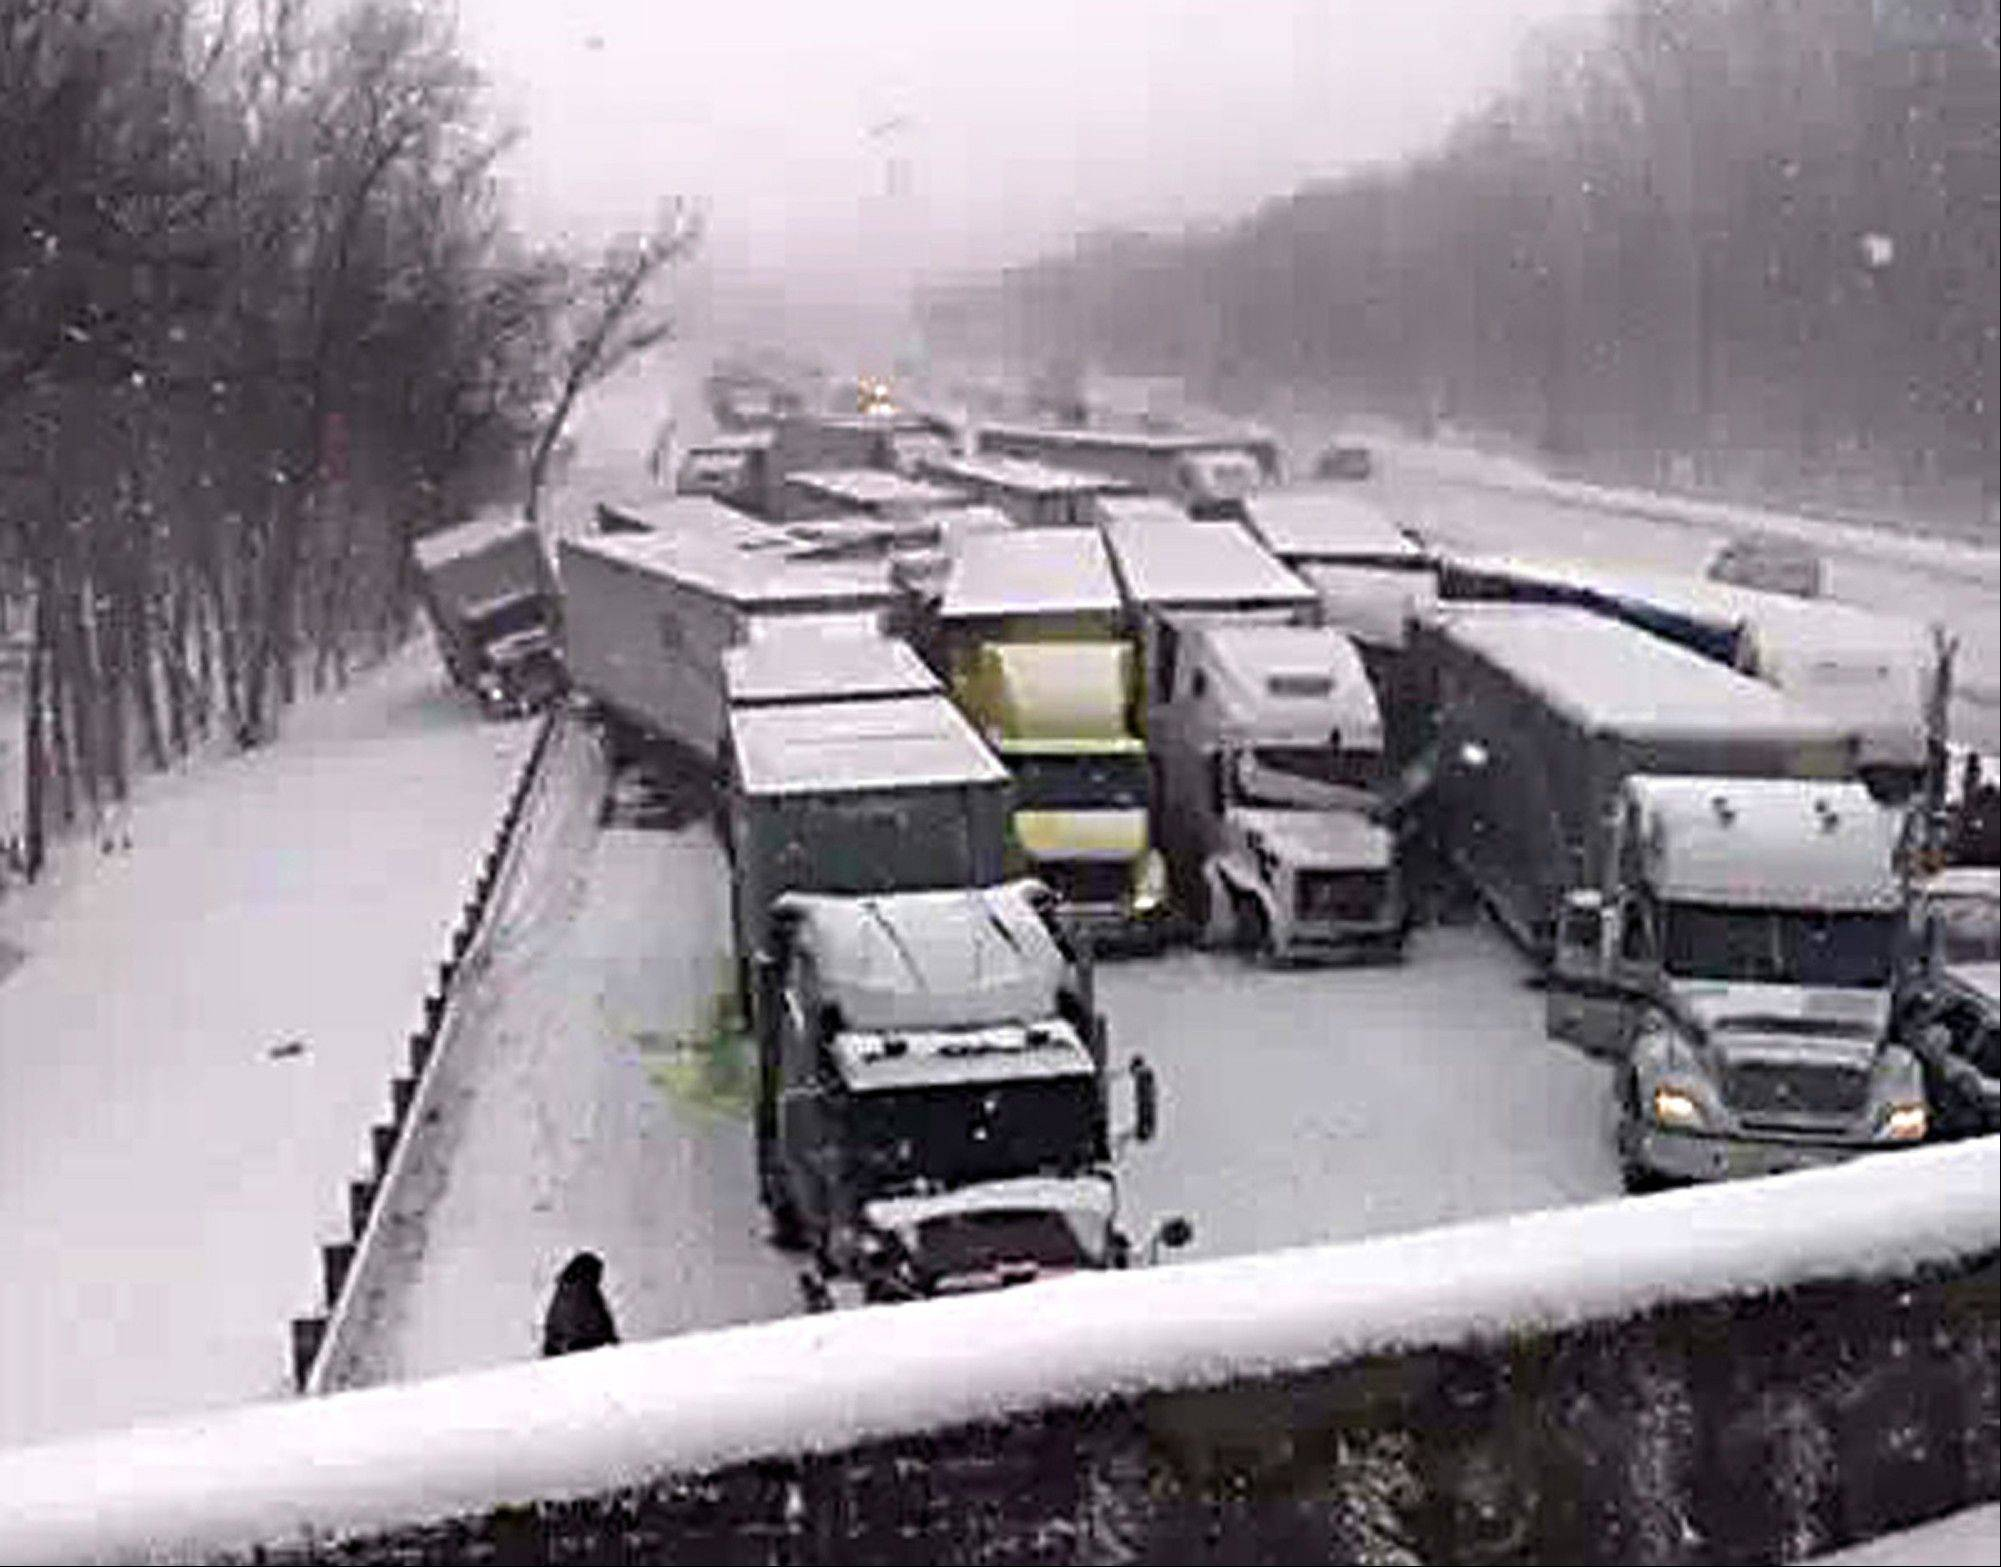 This cellphone image shows a massive highway pileup on Interstate 94 near Michigan City, Ind., Thursday that is being blamed on whiteout conditions. The accident has left three people dead and more than 20 injured in northwestern Indiana. Indiana State Police say they have closed Interstate 94 eastbound and are bringing in cranes and wreckers to help clear the scene.